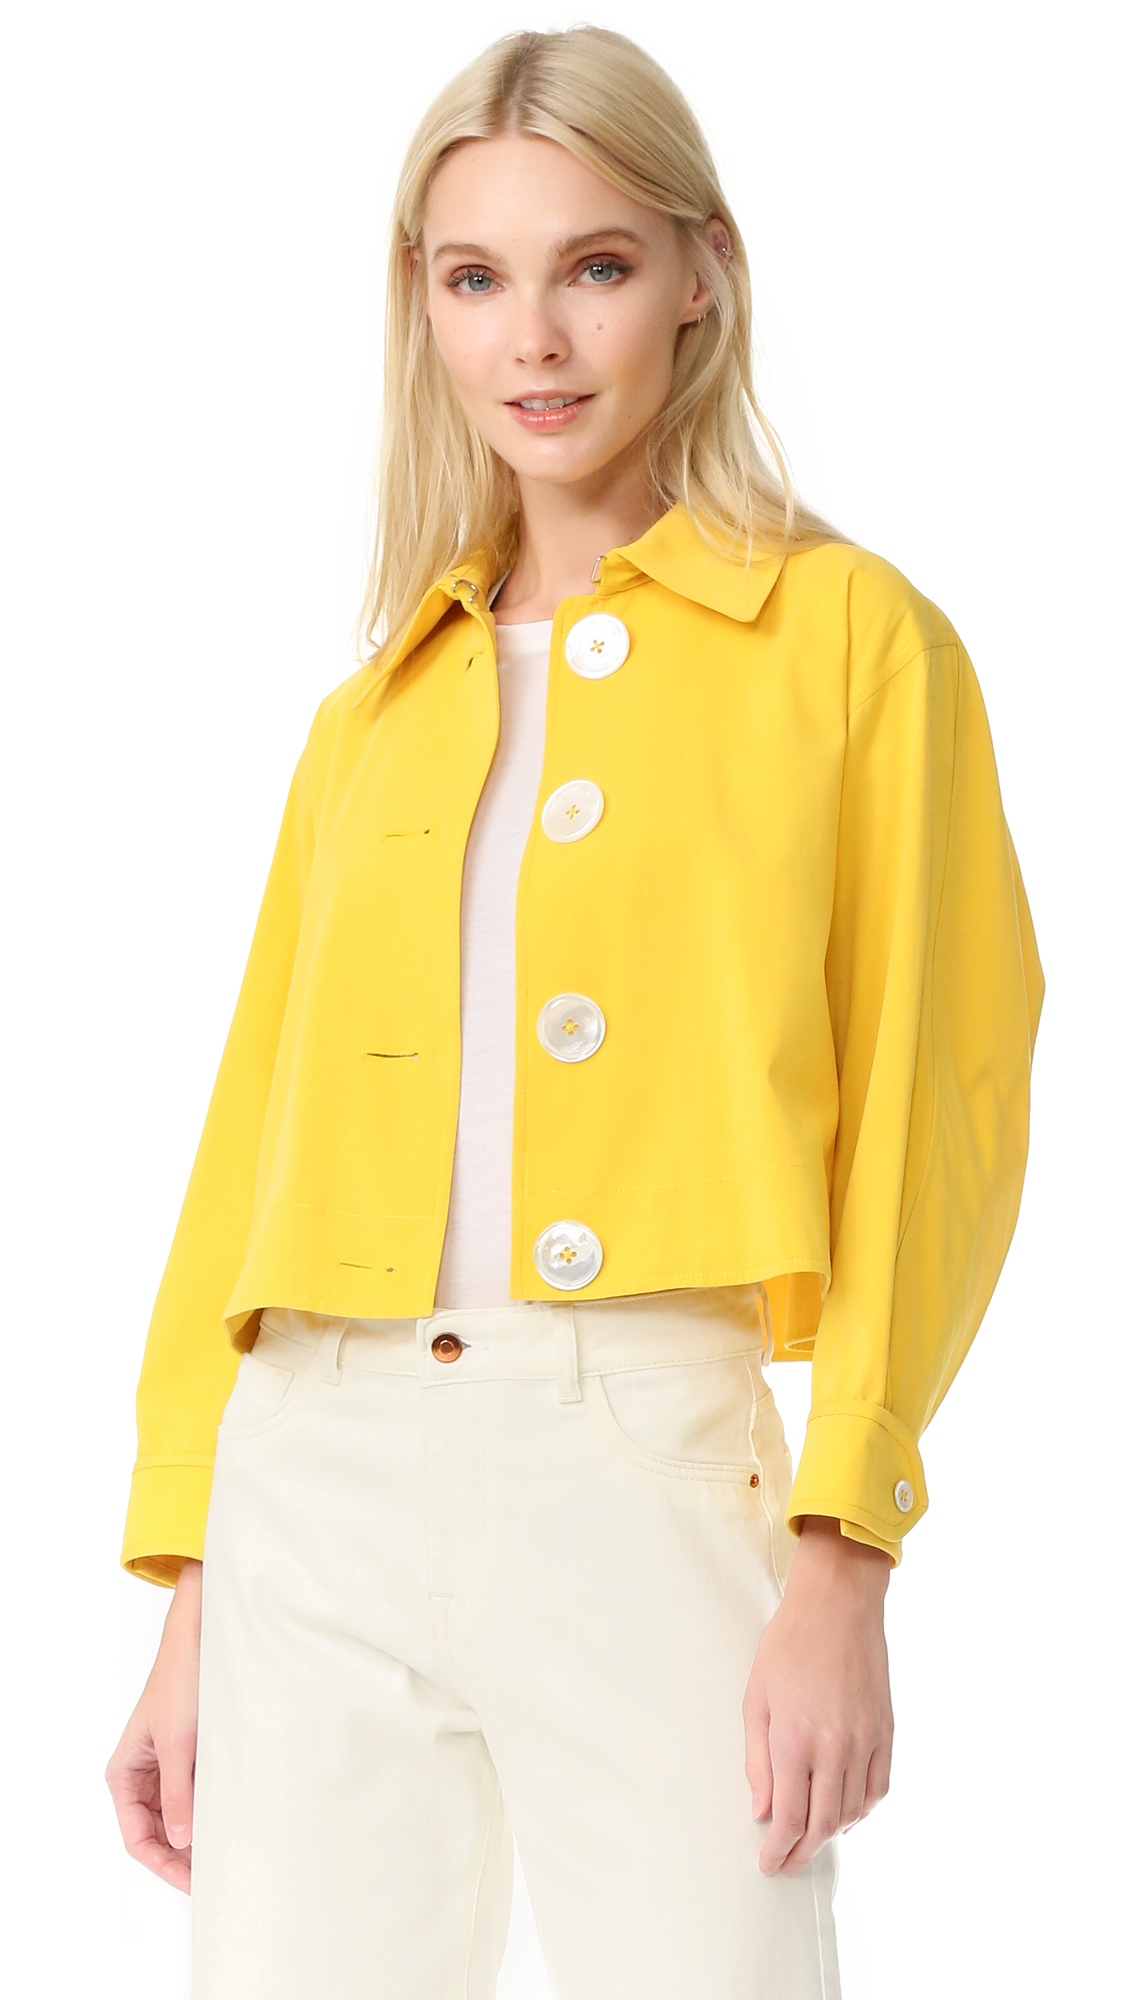 Edun Cropped Trench Jacket - Yellow at Shopbop